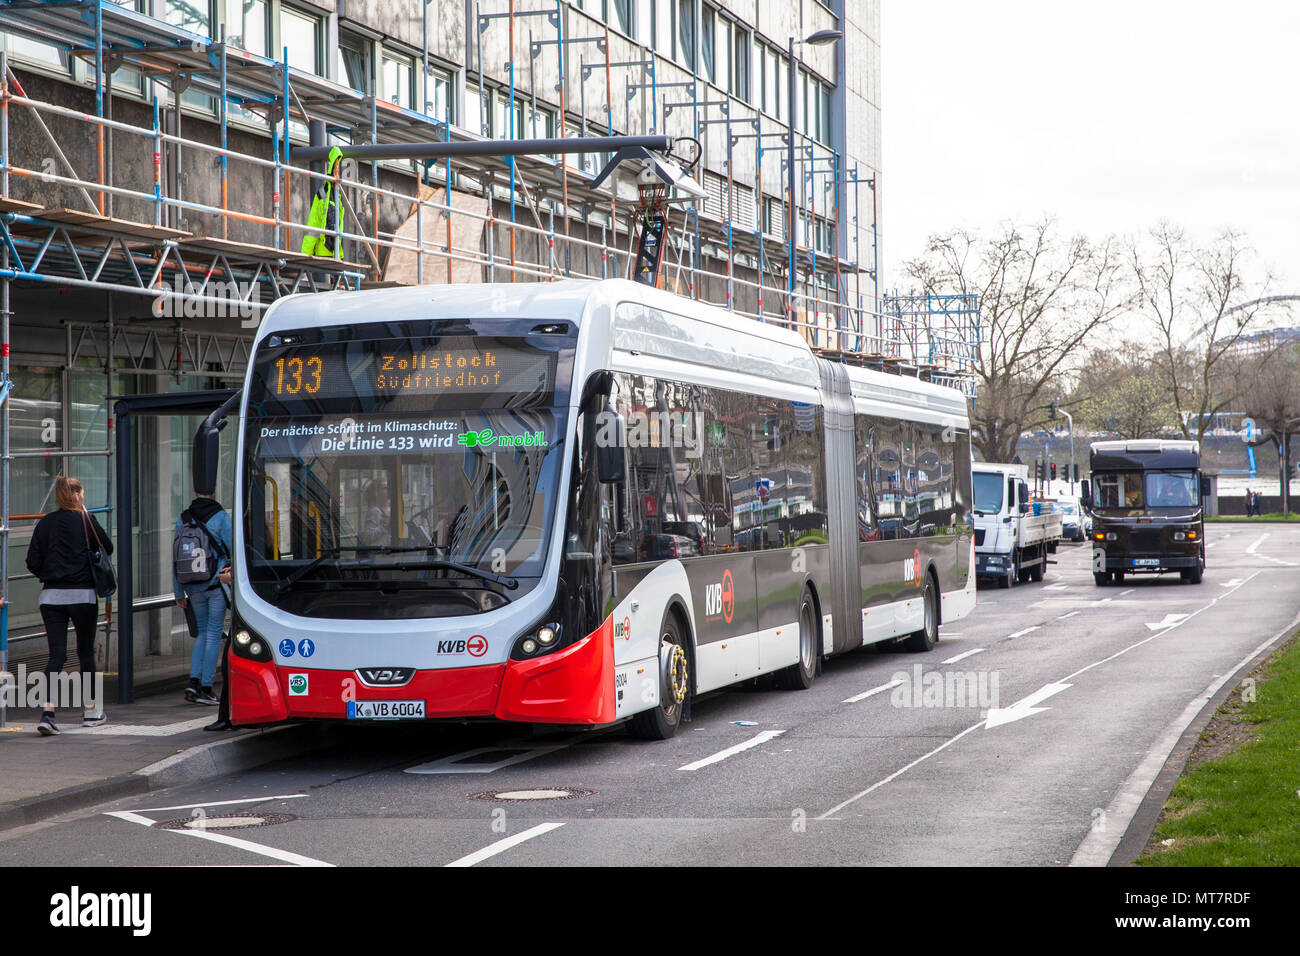 electric bus of the line 133 at a charging station at Breslauer Platz, Cologne, Germany.  Elektrobus der Linie 133 an einer Ladestation am Breslauer P Stock Photo